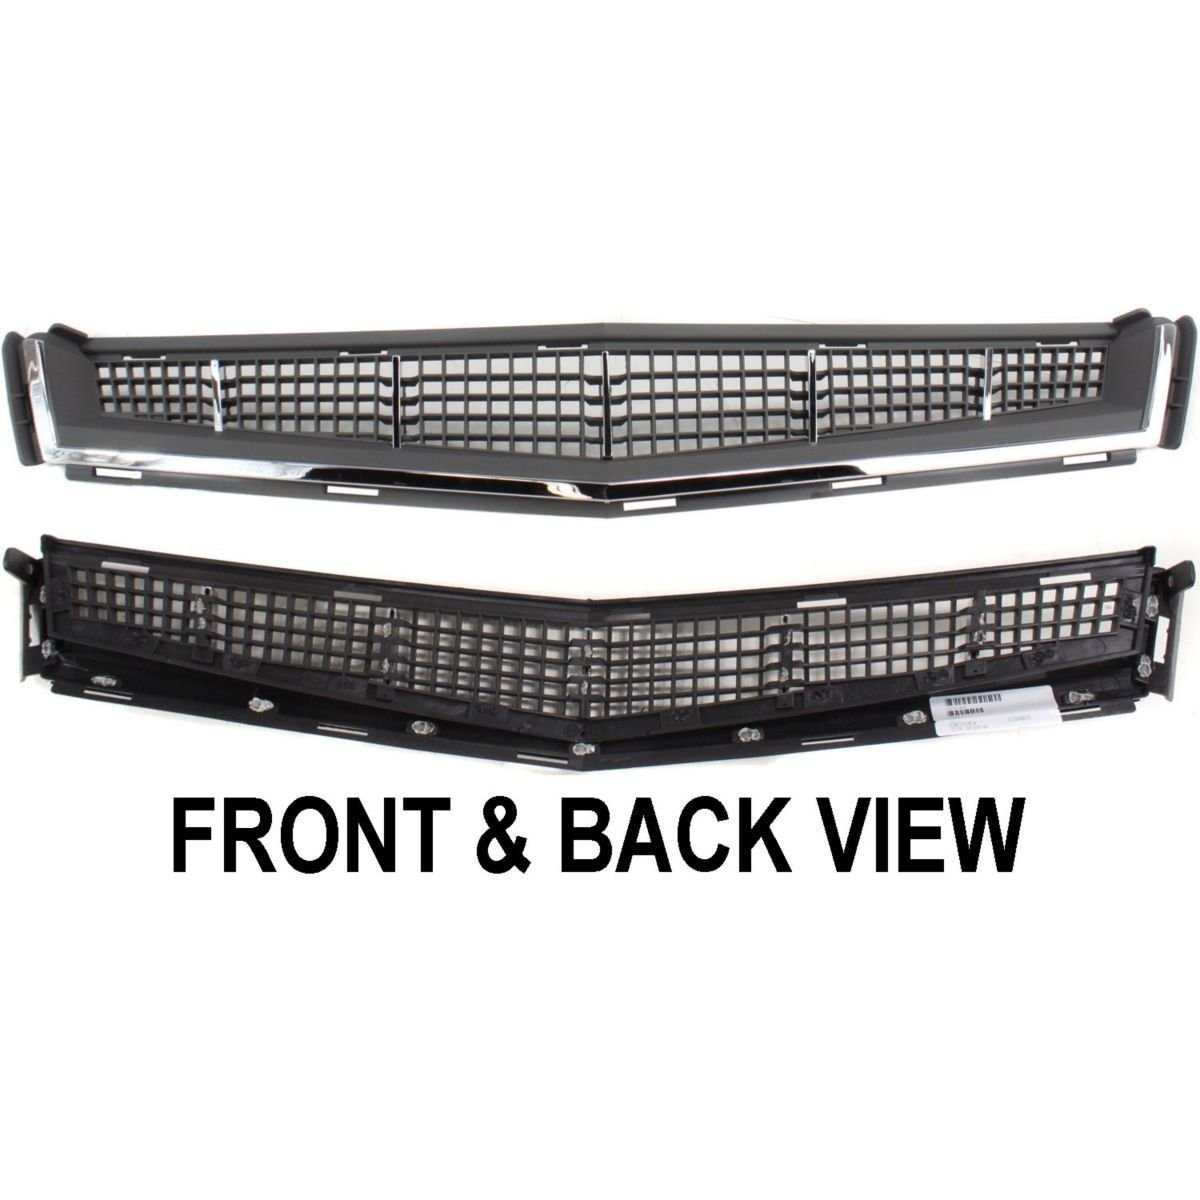 Diften 105-A6352-X01 - New Bumper Grille Front Chrome Coupe Sedan Cadillac CTS GM1036123 25896041